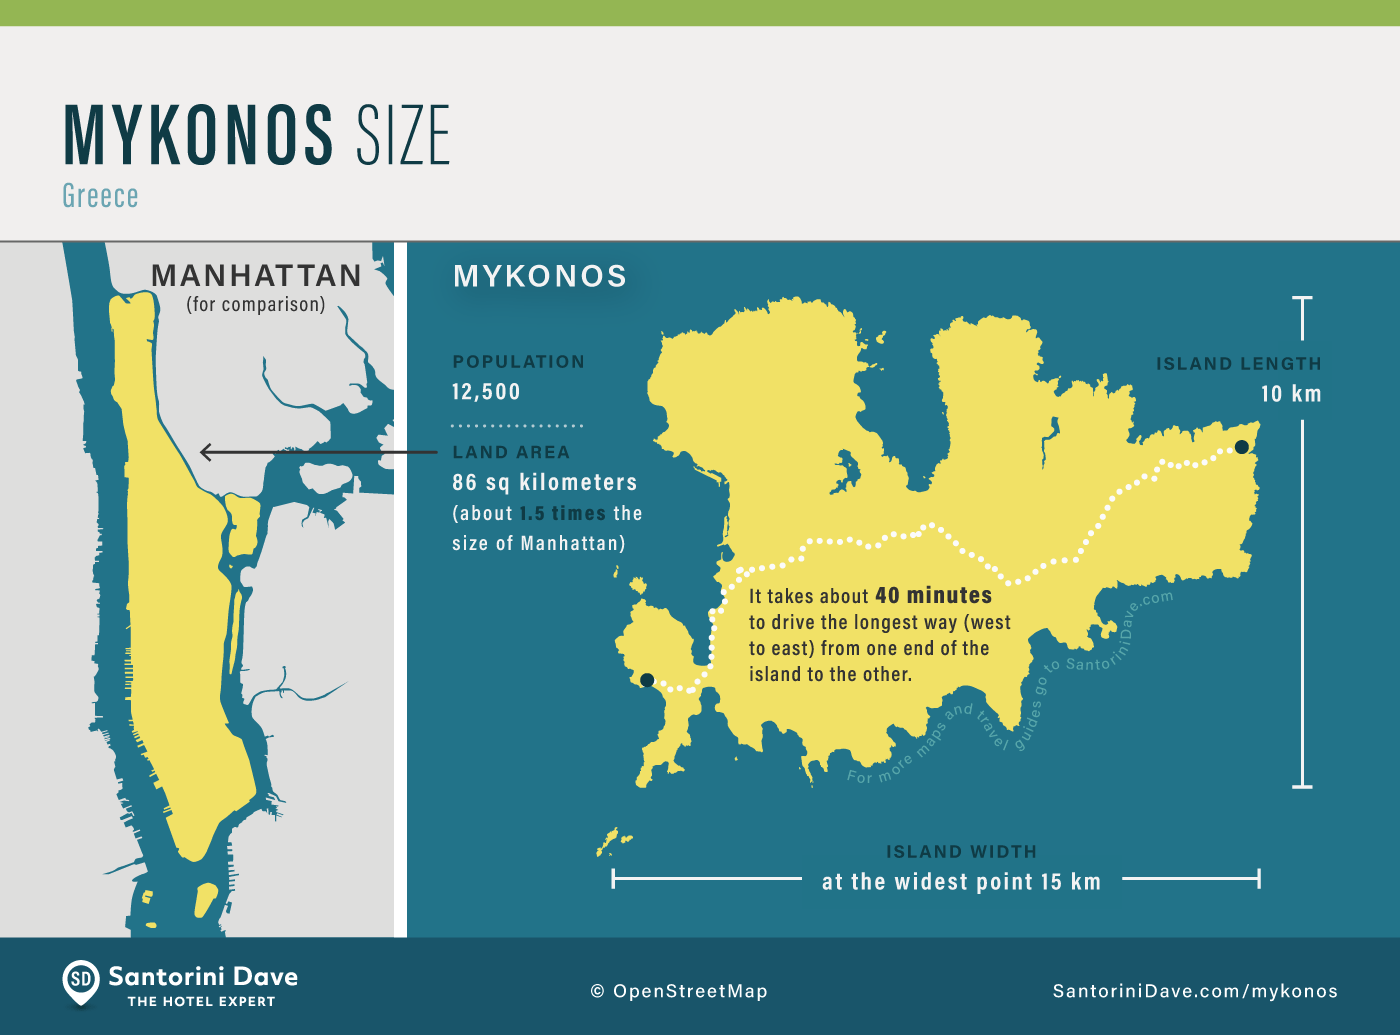 Map showing the size of Mykonos, Greece, in relation to the size of Manhattan, New York